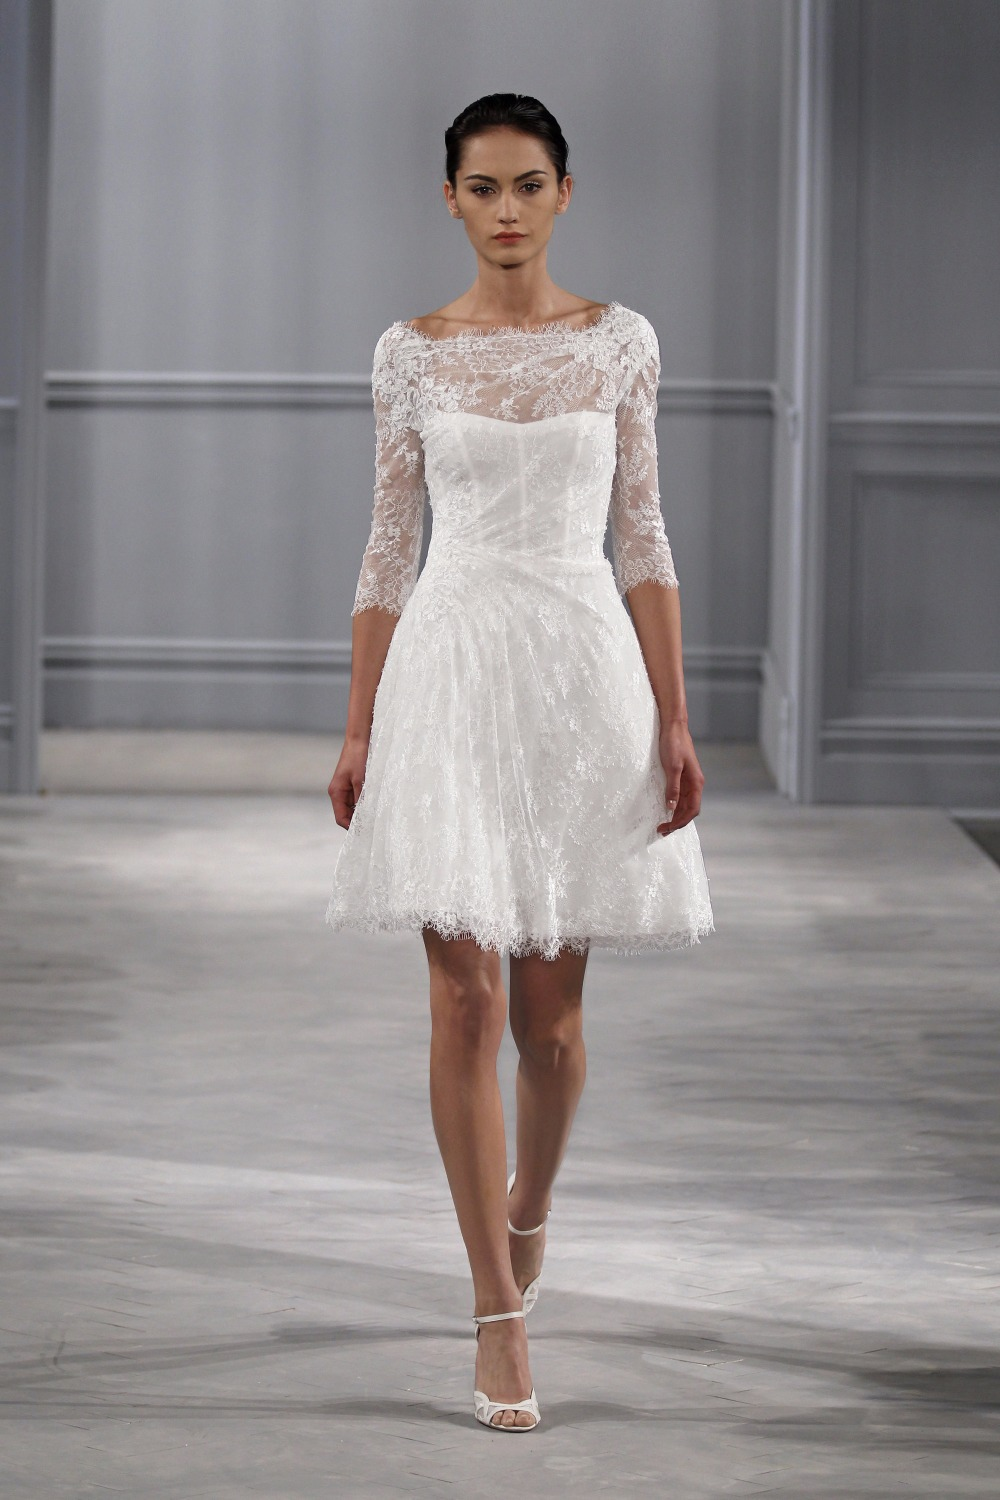 Direct Selling Hot Sale Short Vestido De Novia Off The Shoulder All Lace Bridal Gown With Sleeves Mother Of The Bride Dresses